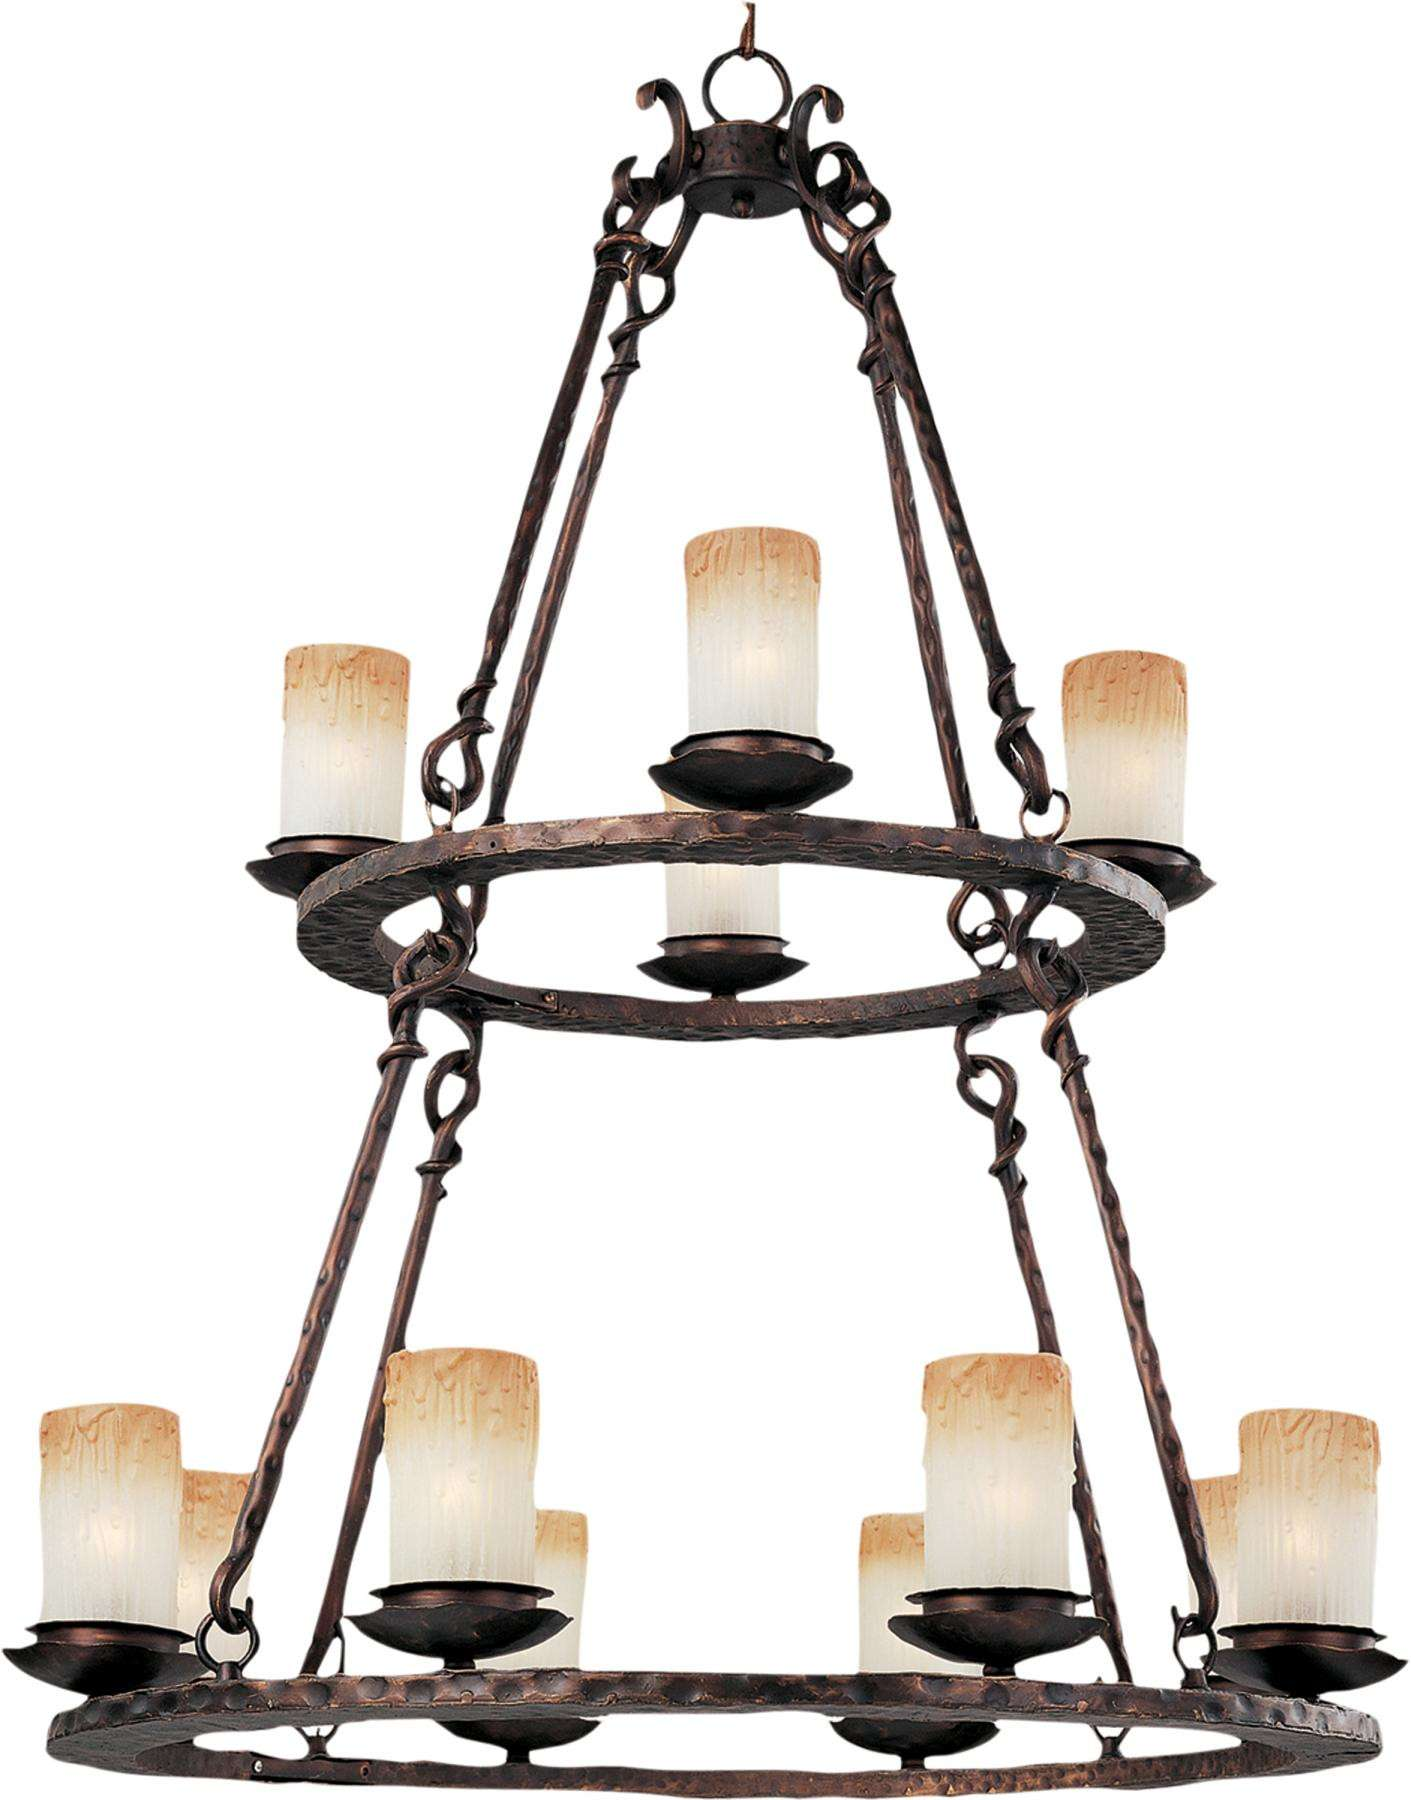 Maxim 10977WSOI Notre Dame 12-Light Chandelier in Oil Rubbed Bronze with Wilshire glass.